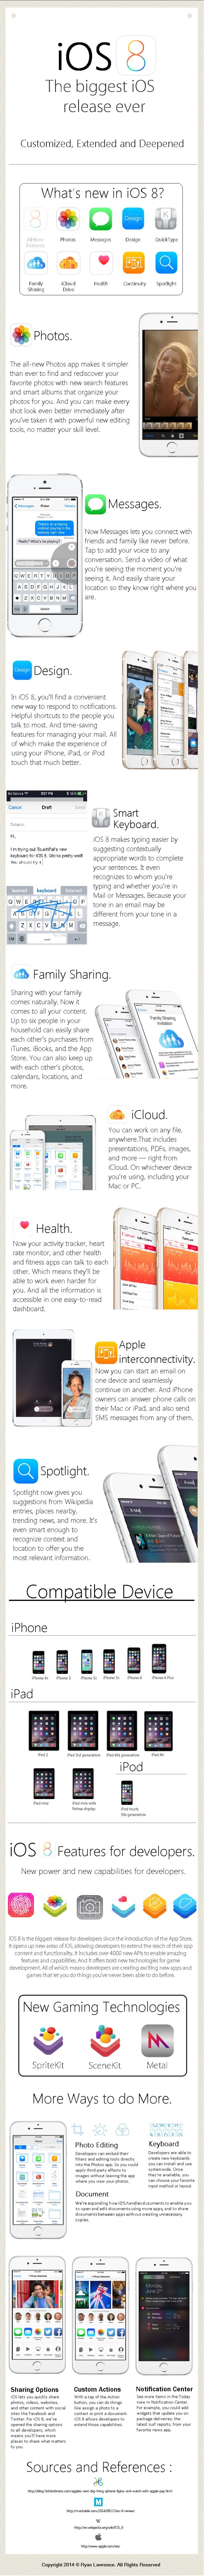 [Infographic] Apple iOS 8 Features : Everything you need to know!